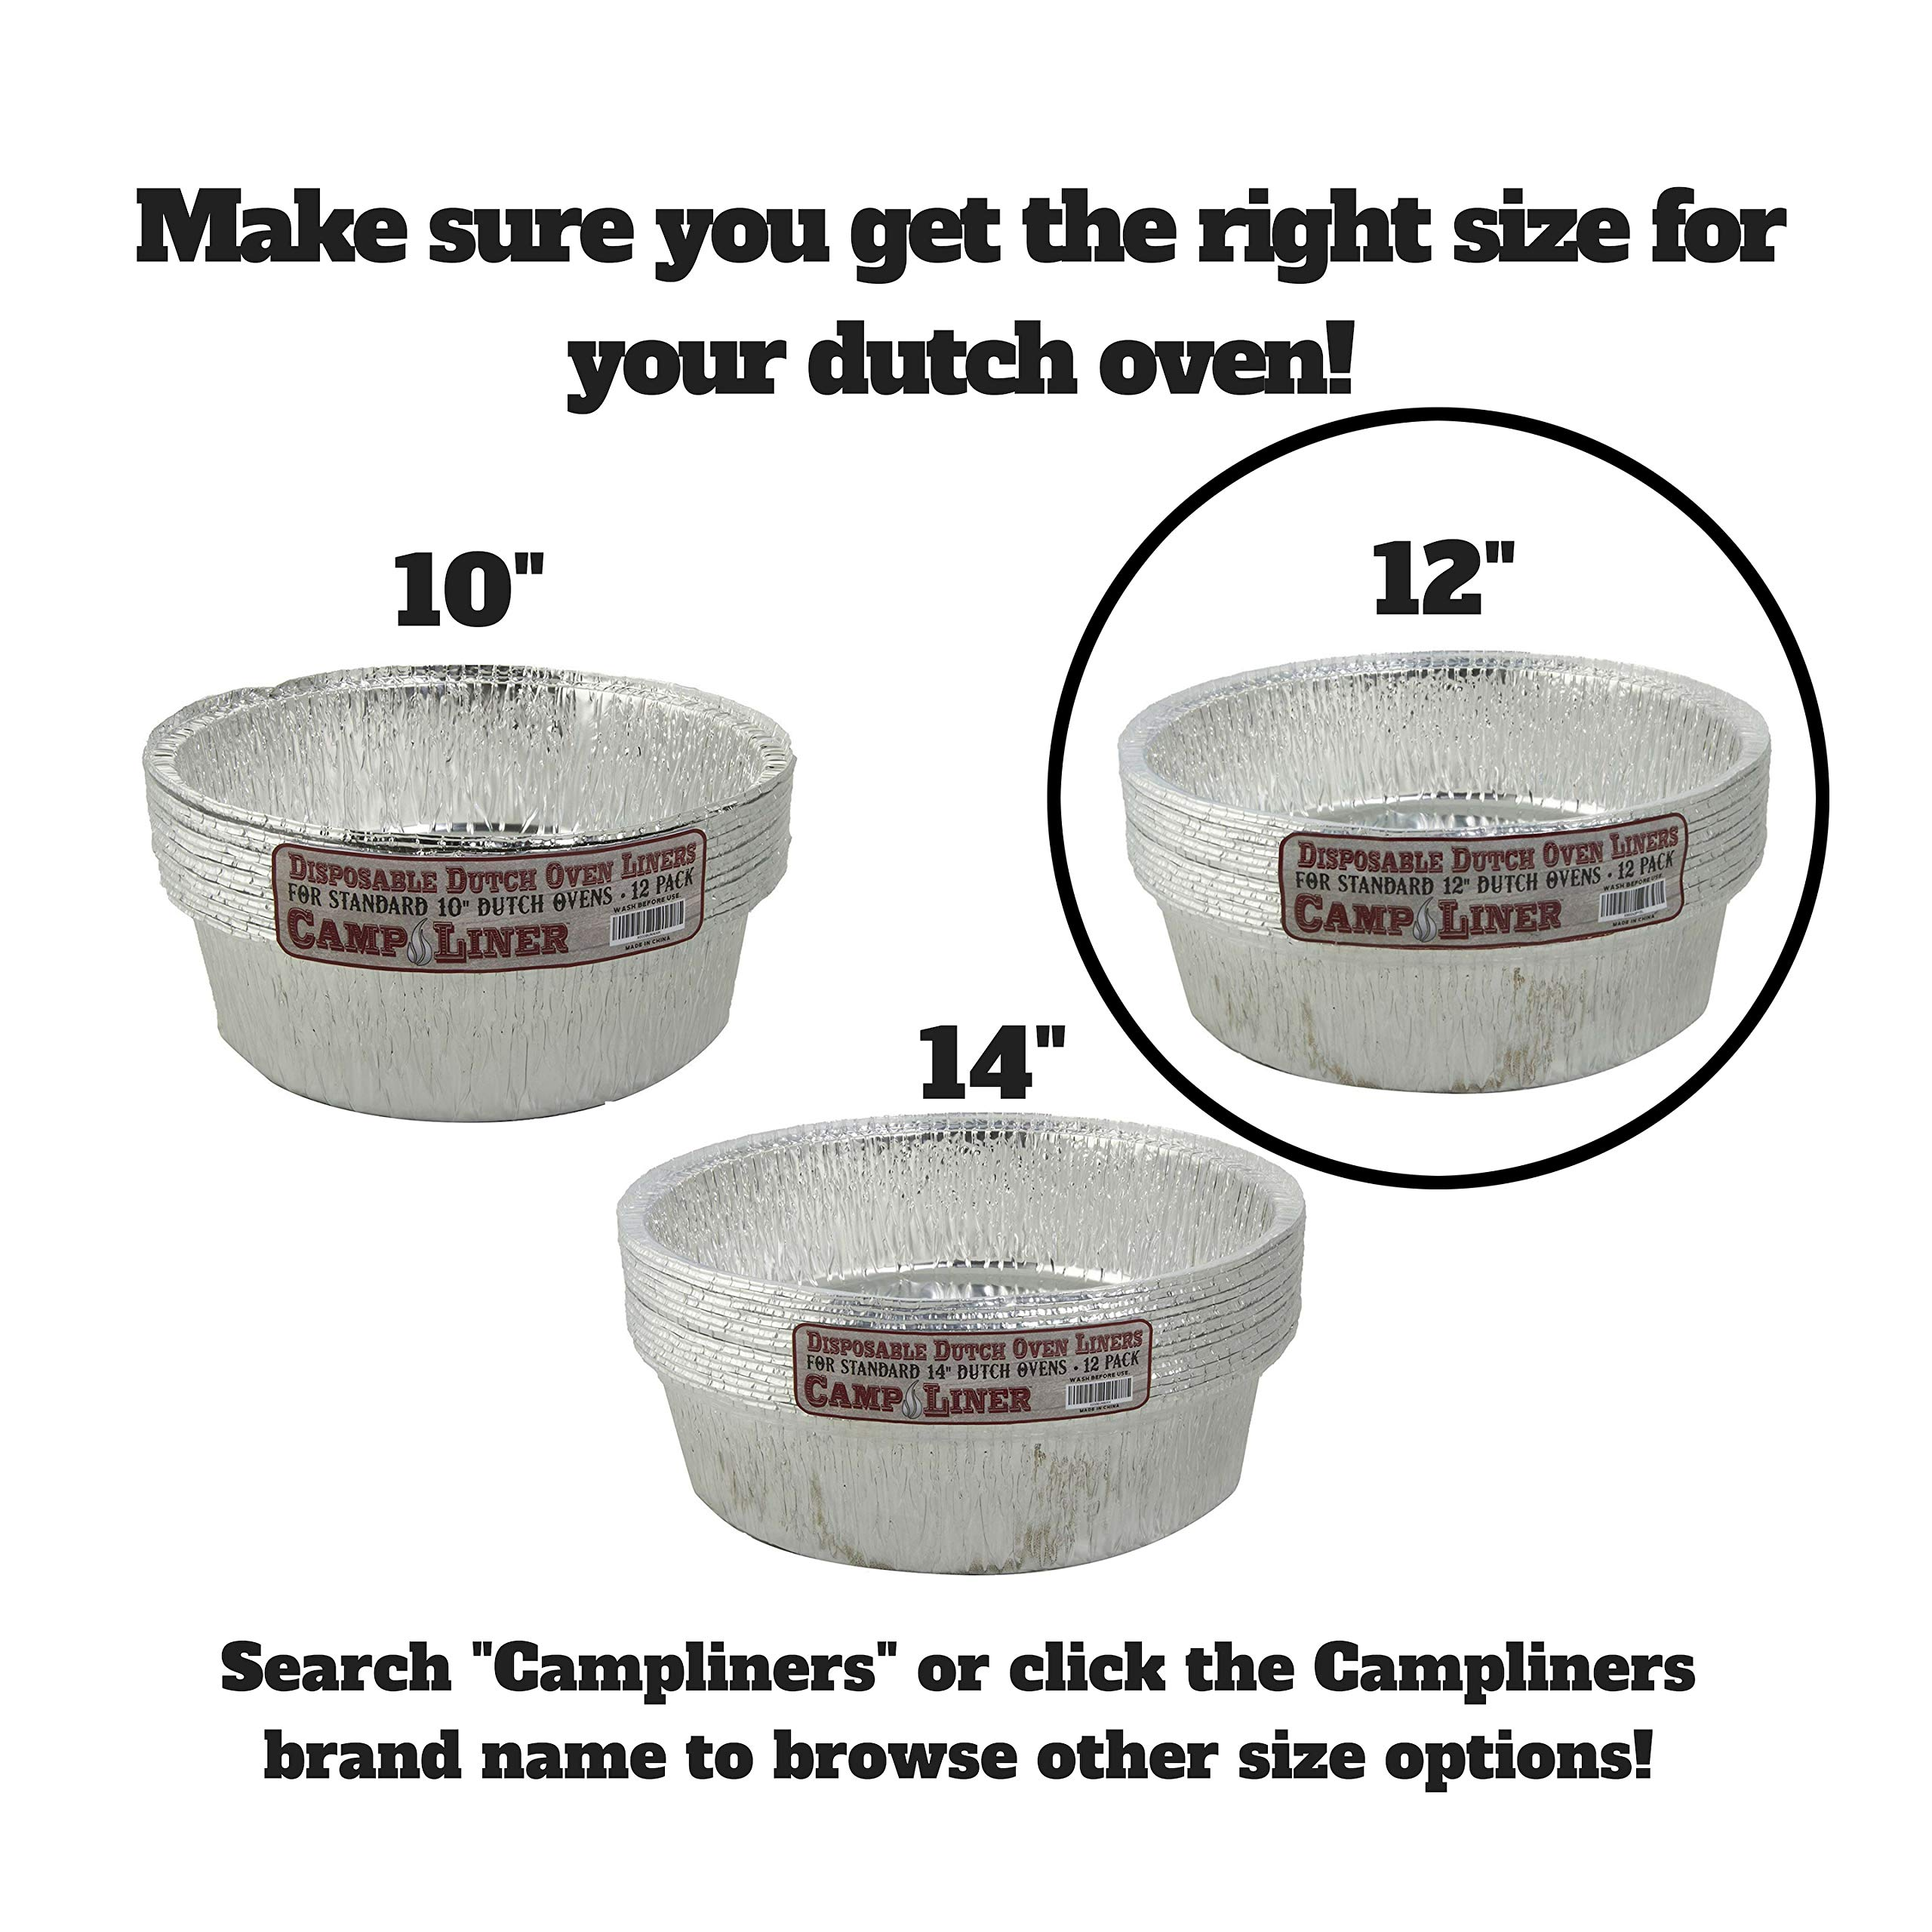 Campliner Original Dutch Oven Liners, 30 Pack of 12-Inch 6-Quart Disposable Liners - No More Cleaning Or Seasoning Your Dutch Ovens. Fits Lodge, Camp Chef, and Other 12'' Cast Iron Dutch Ovens by CAMP LINER (Image #4)